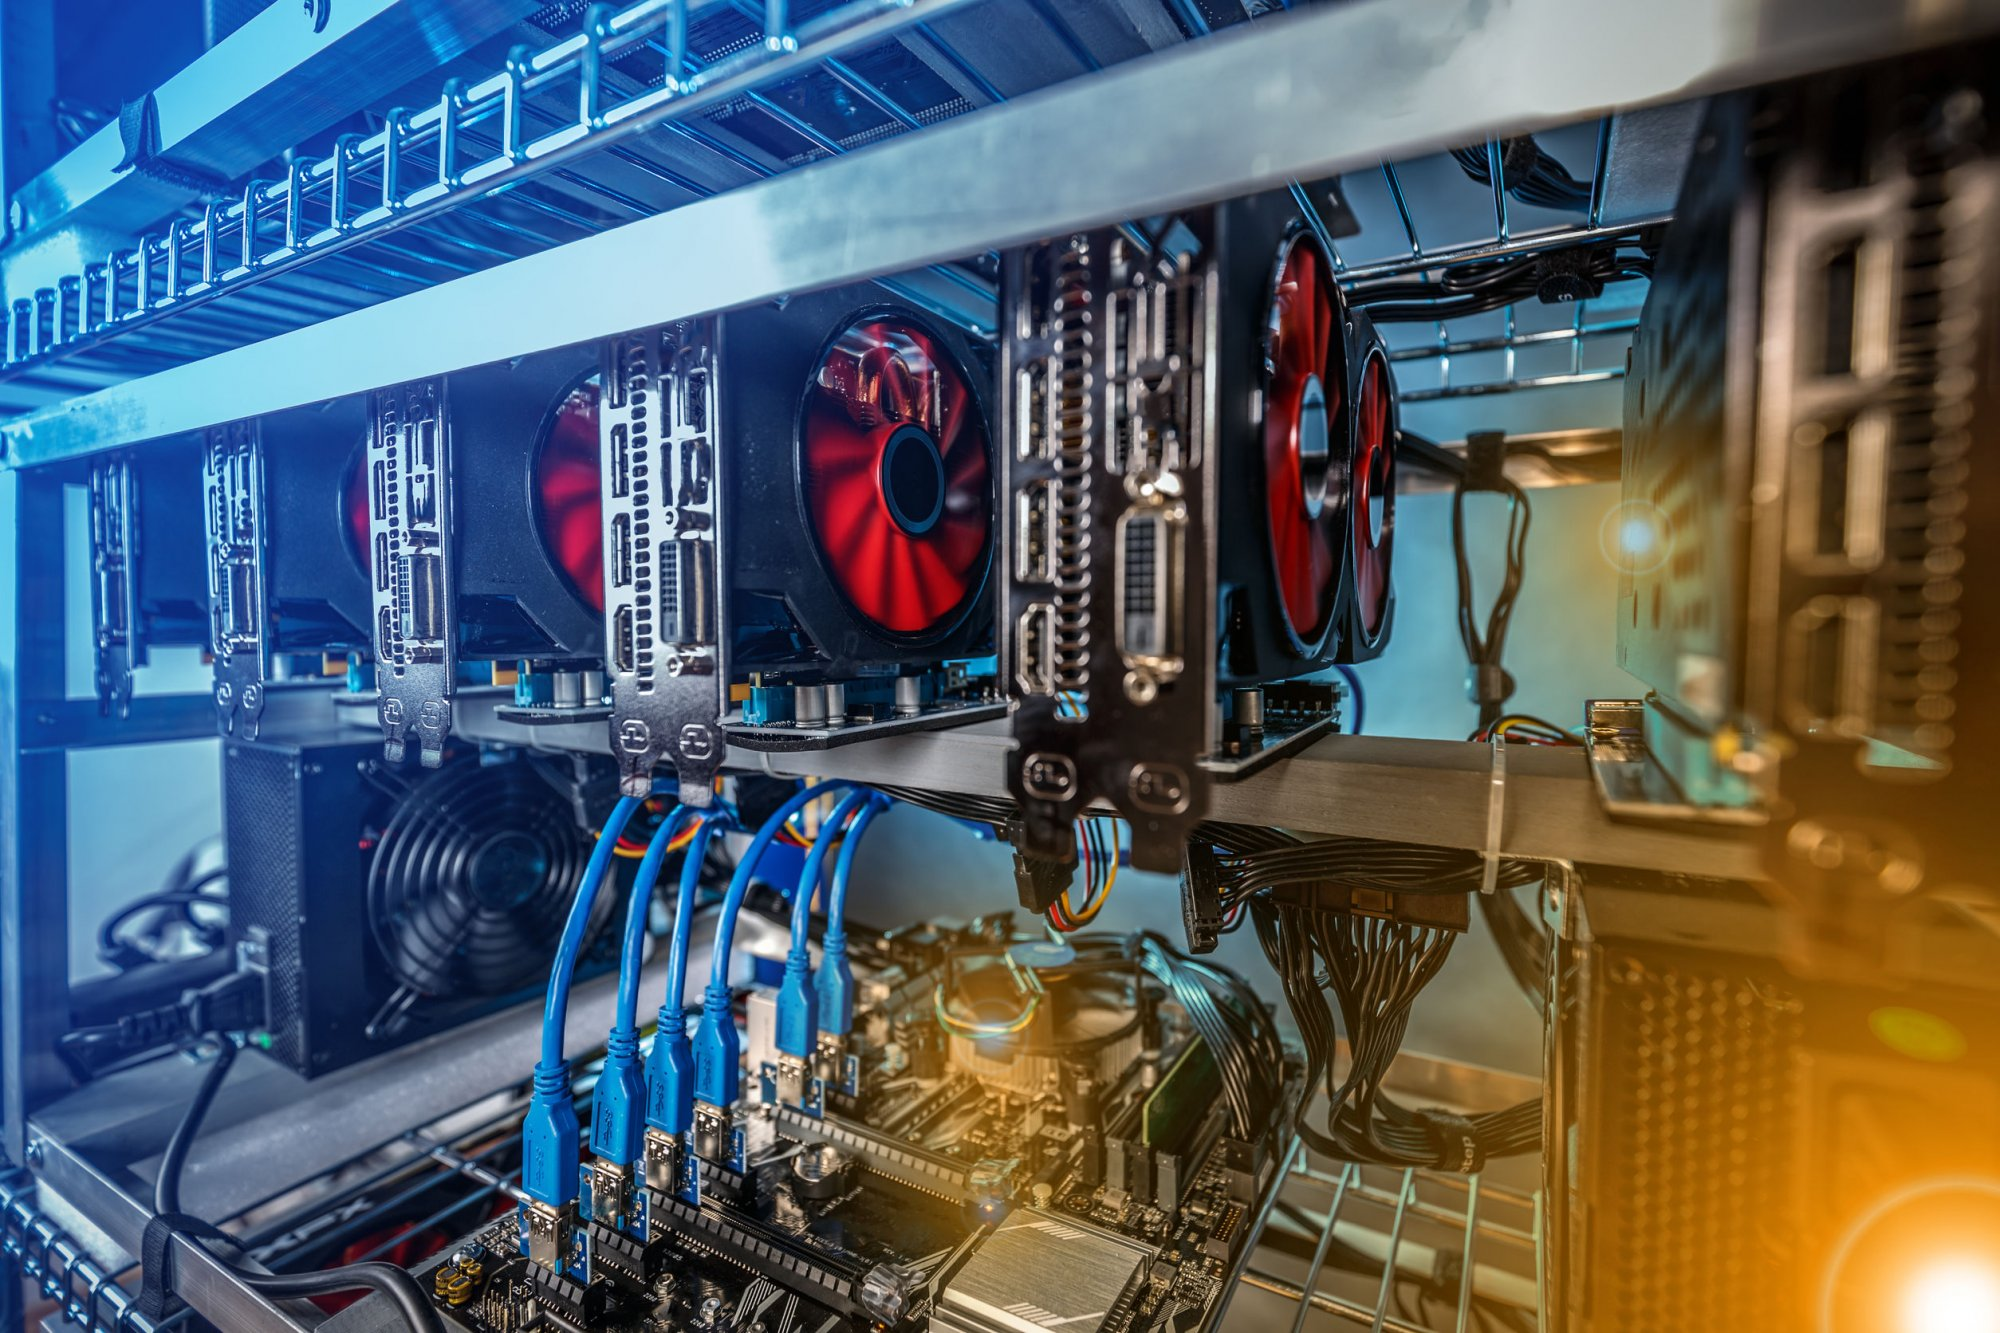 Farm for mining crypto currency on video cards